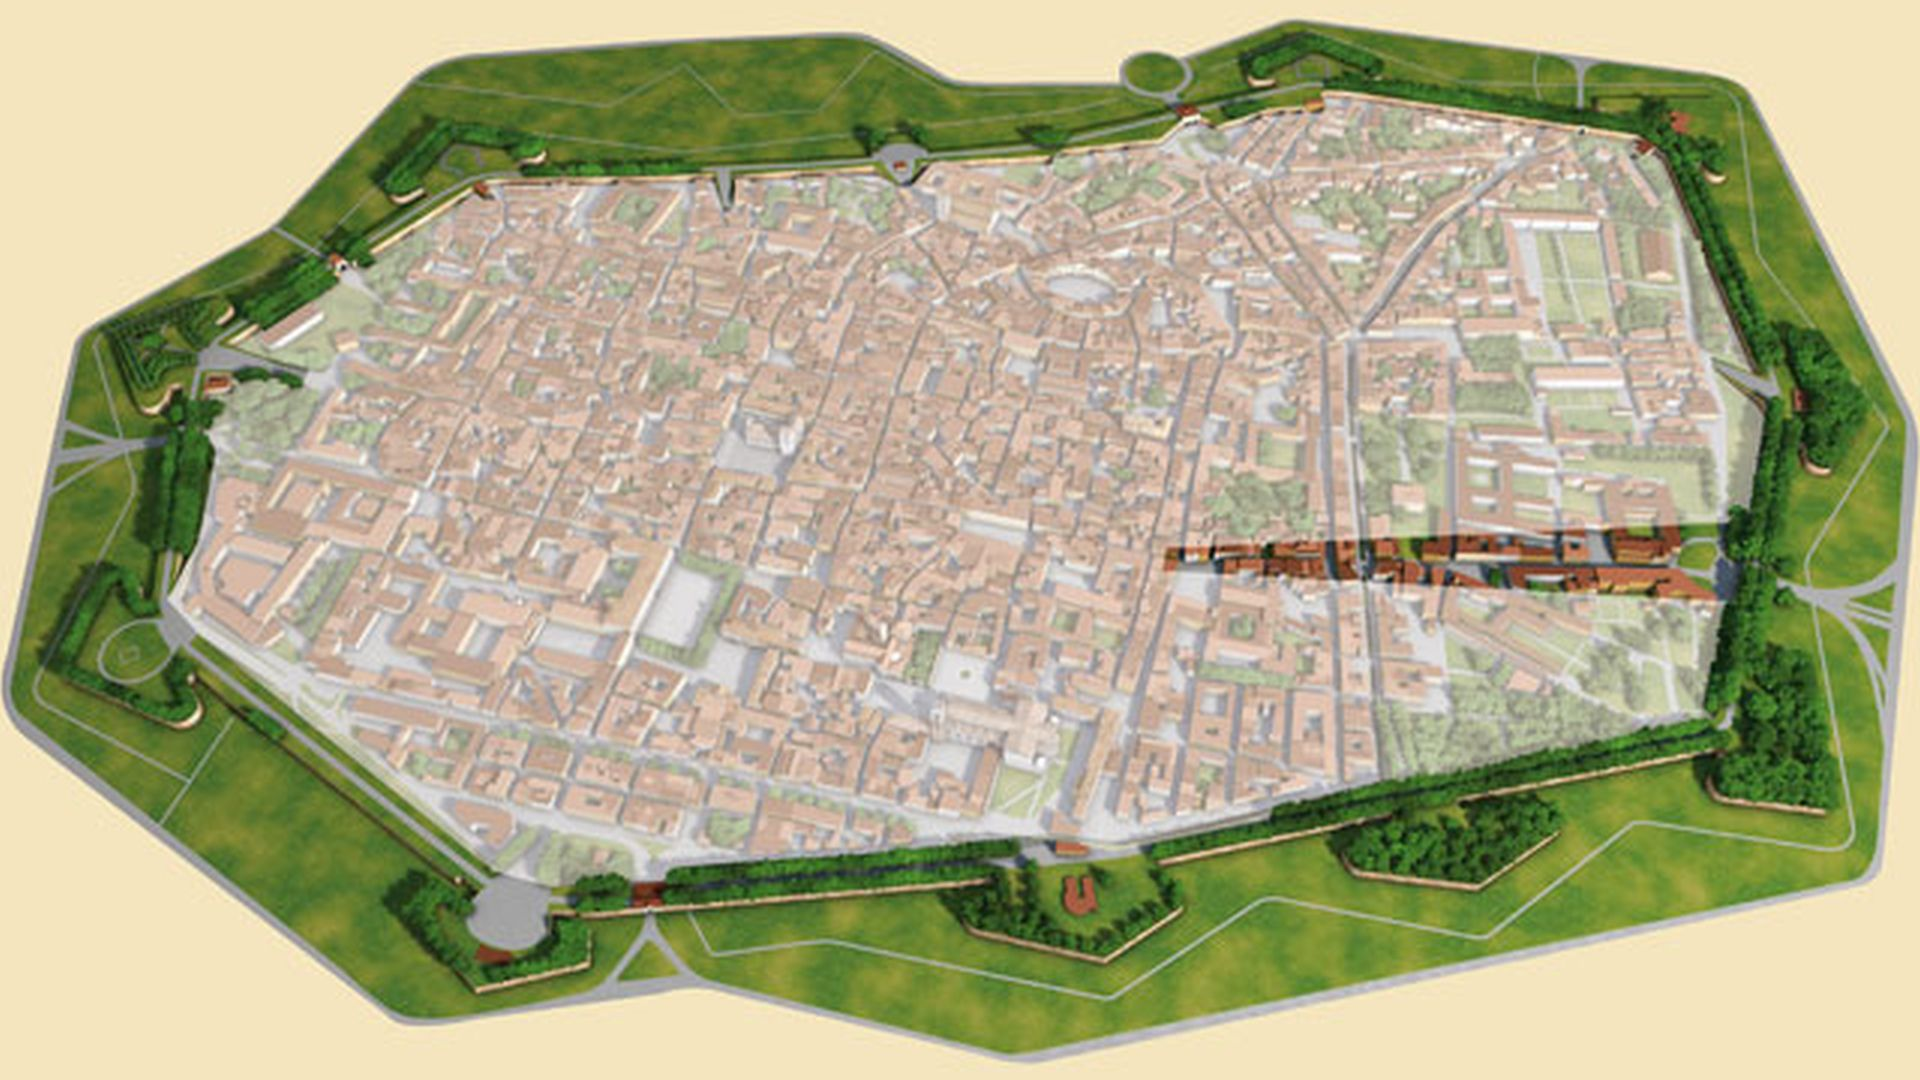 Map of Lucca with spotlight on the eastern area